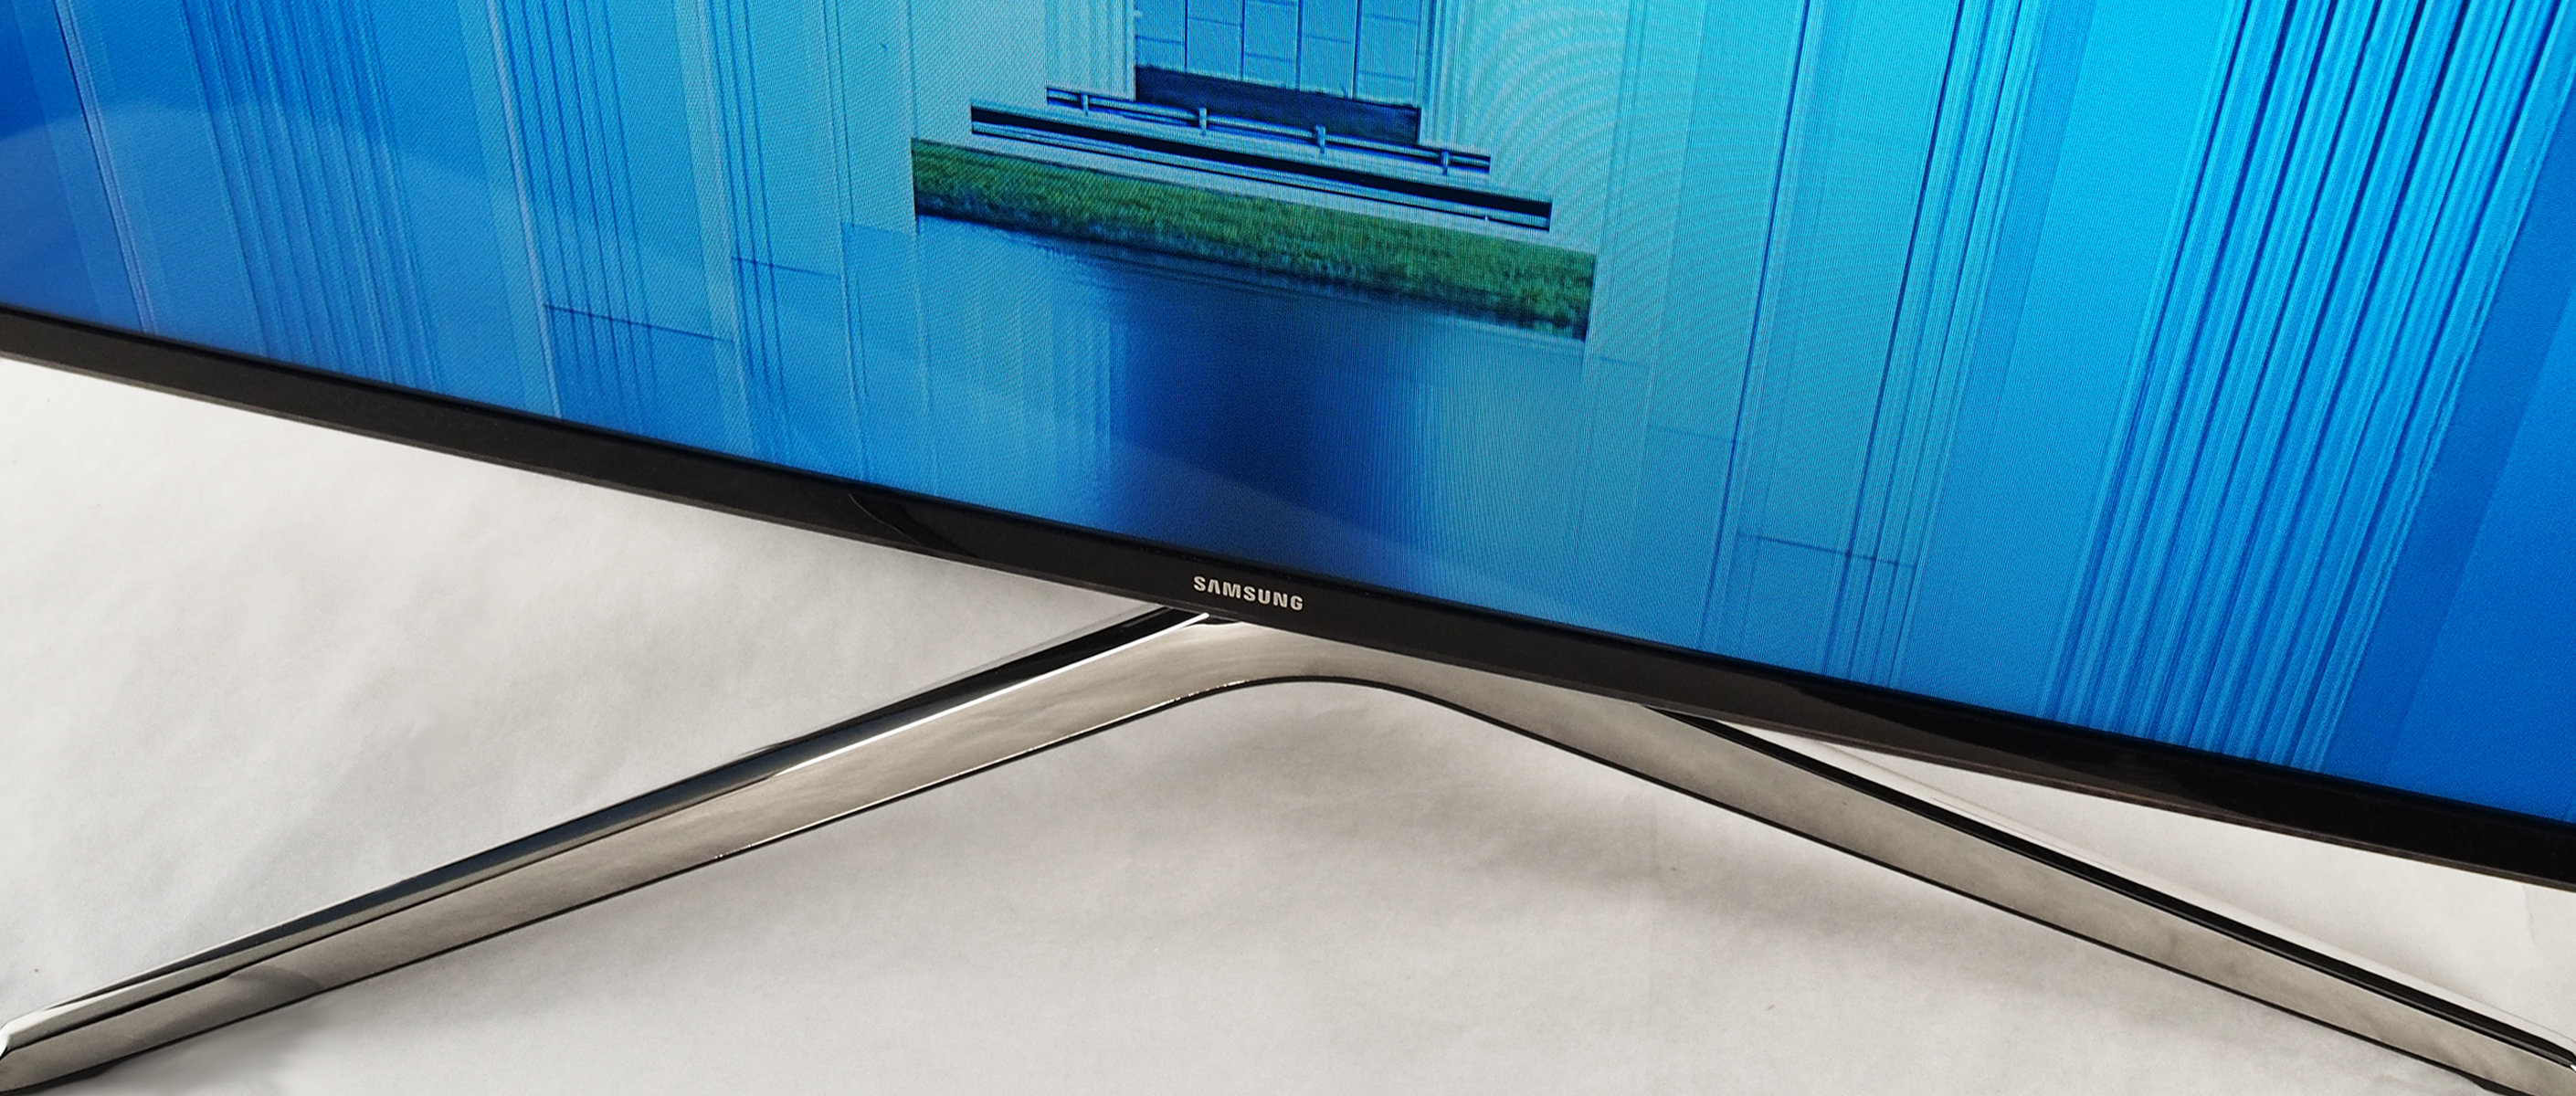 The Samsung UN48H6400 LED TV